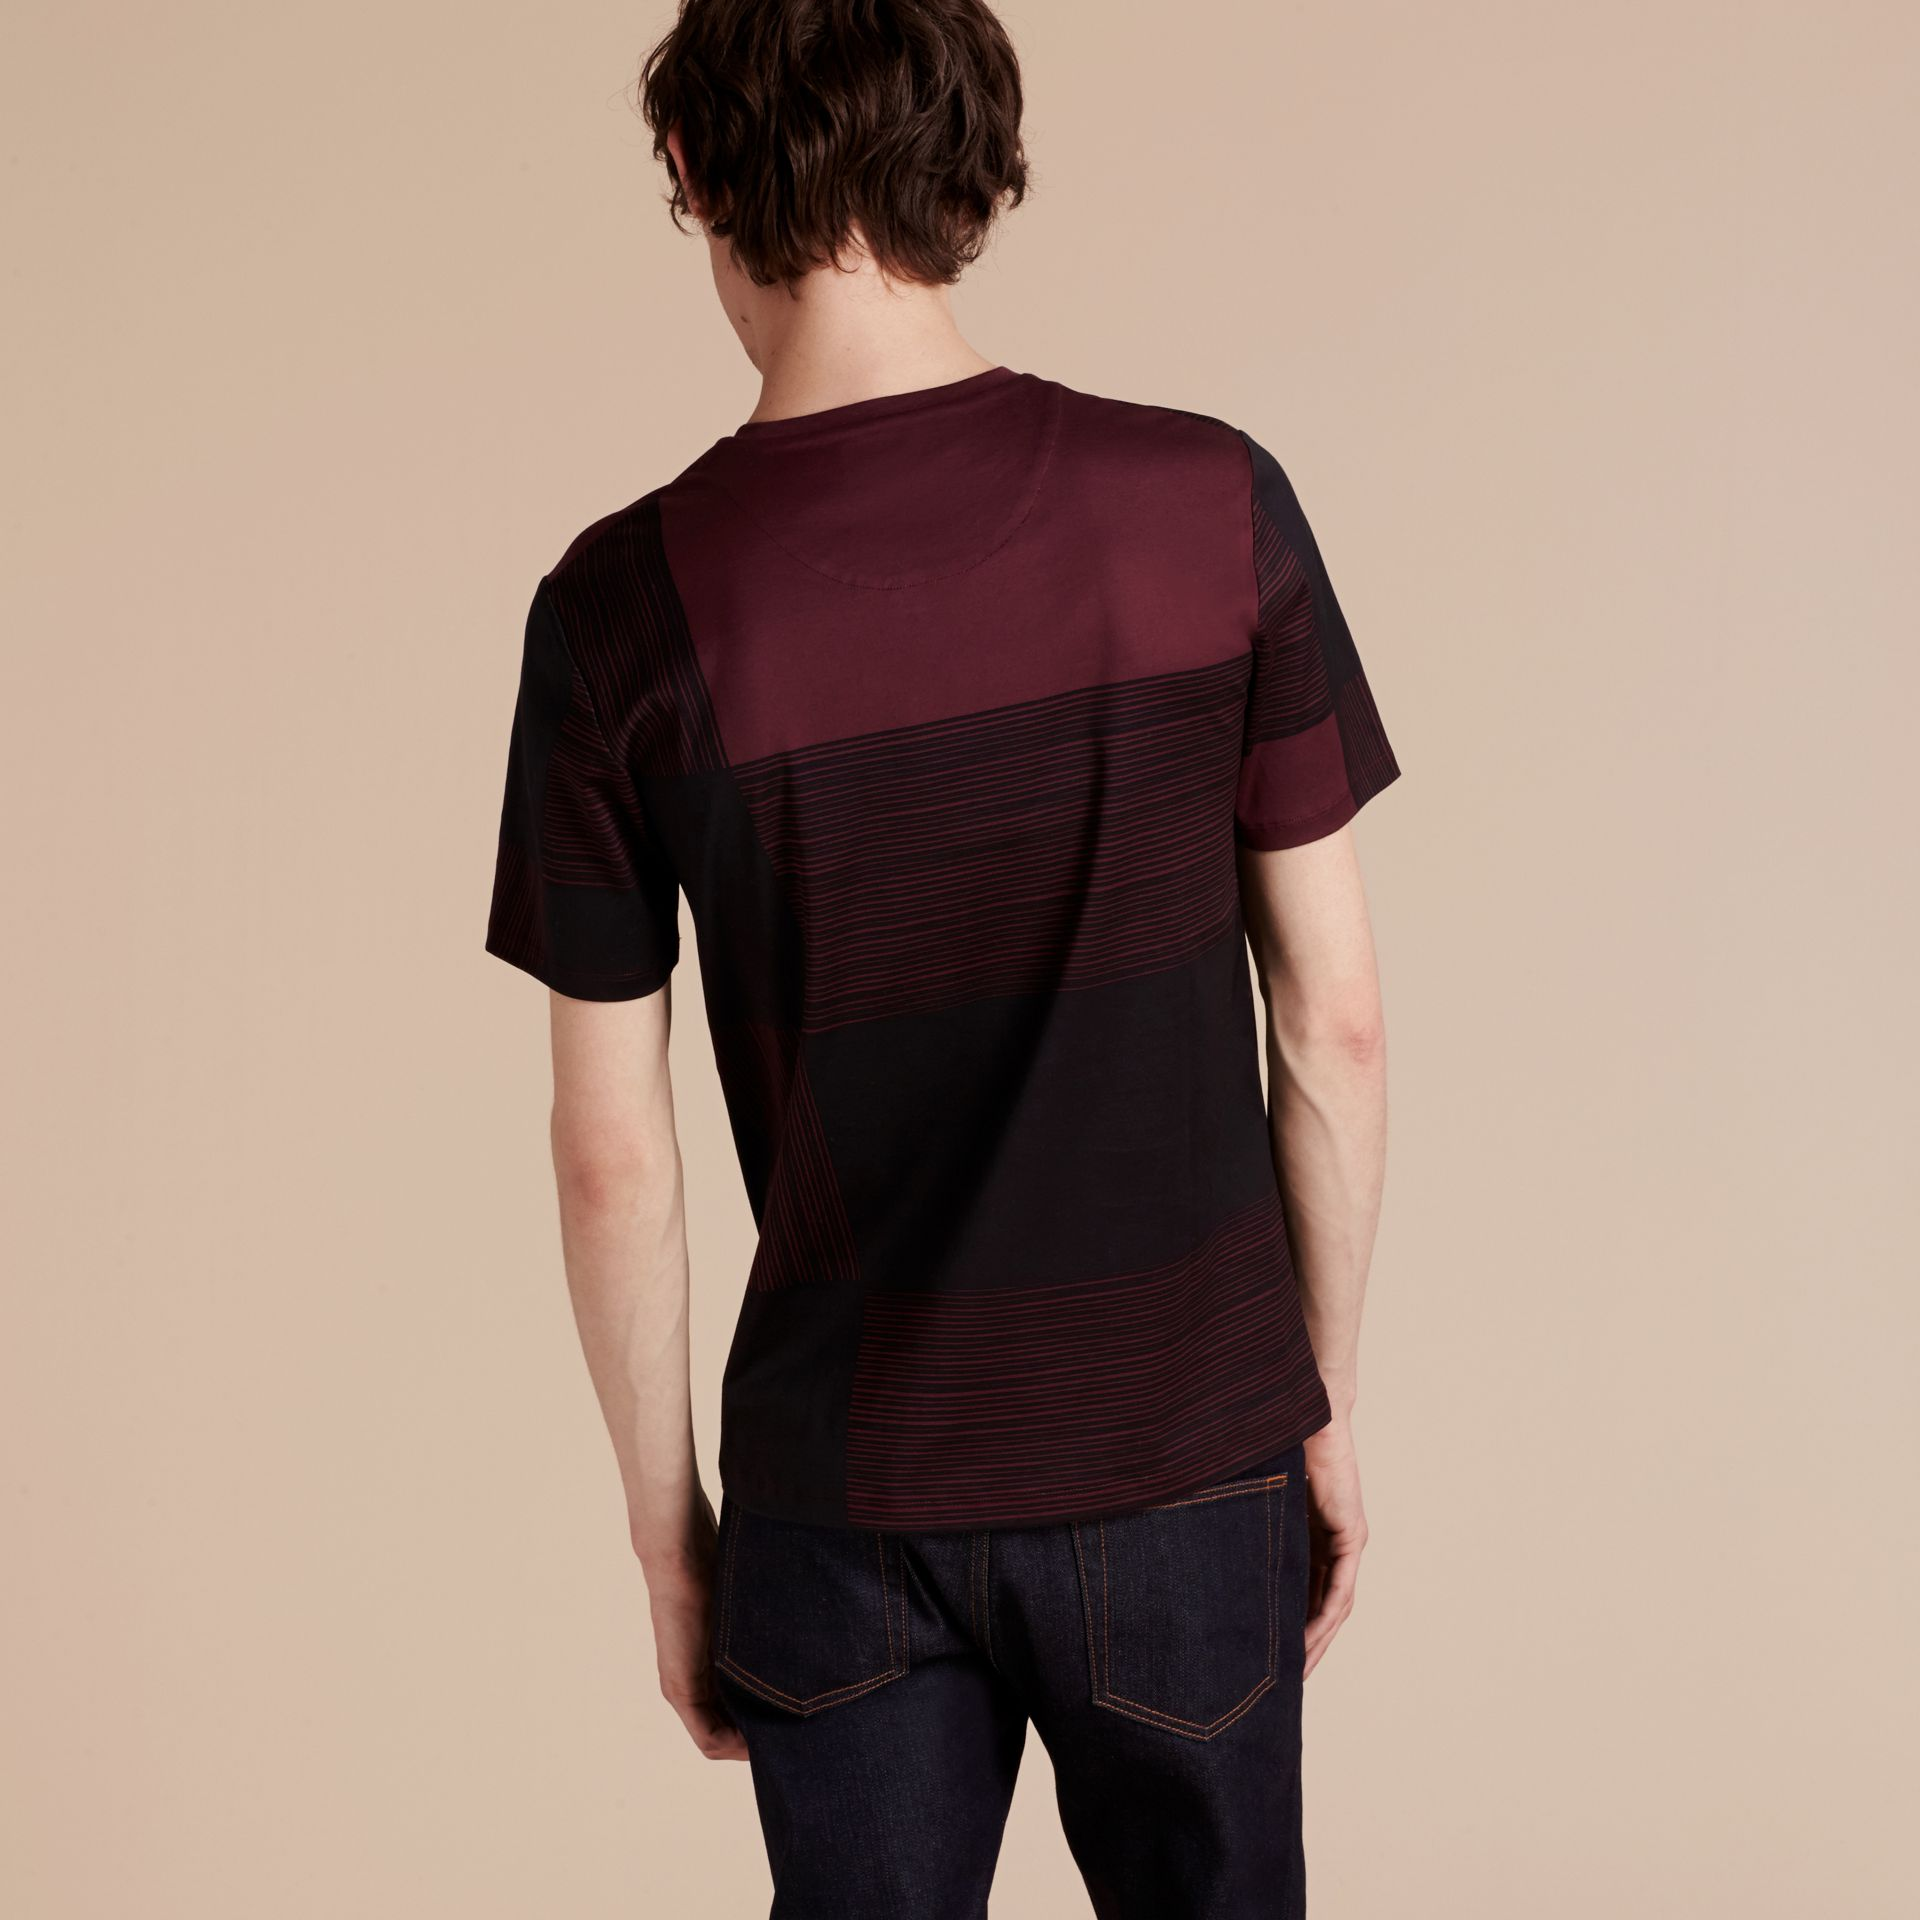 Burgundy Check Print Cotton T-shirt Burgundy - gallery image 3